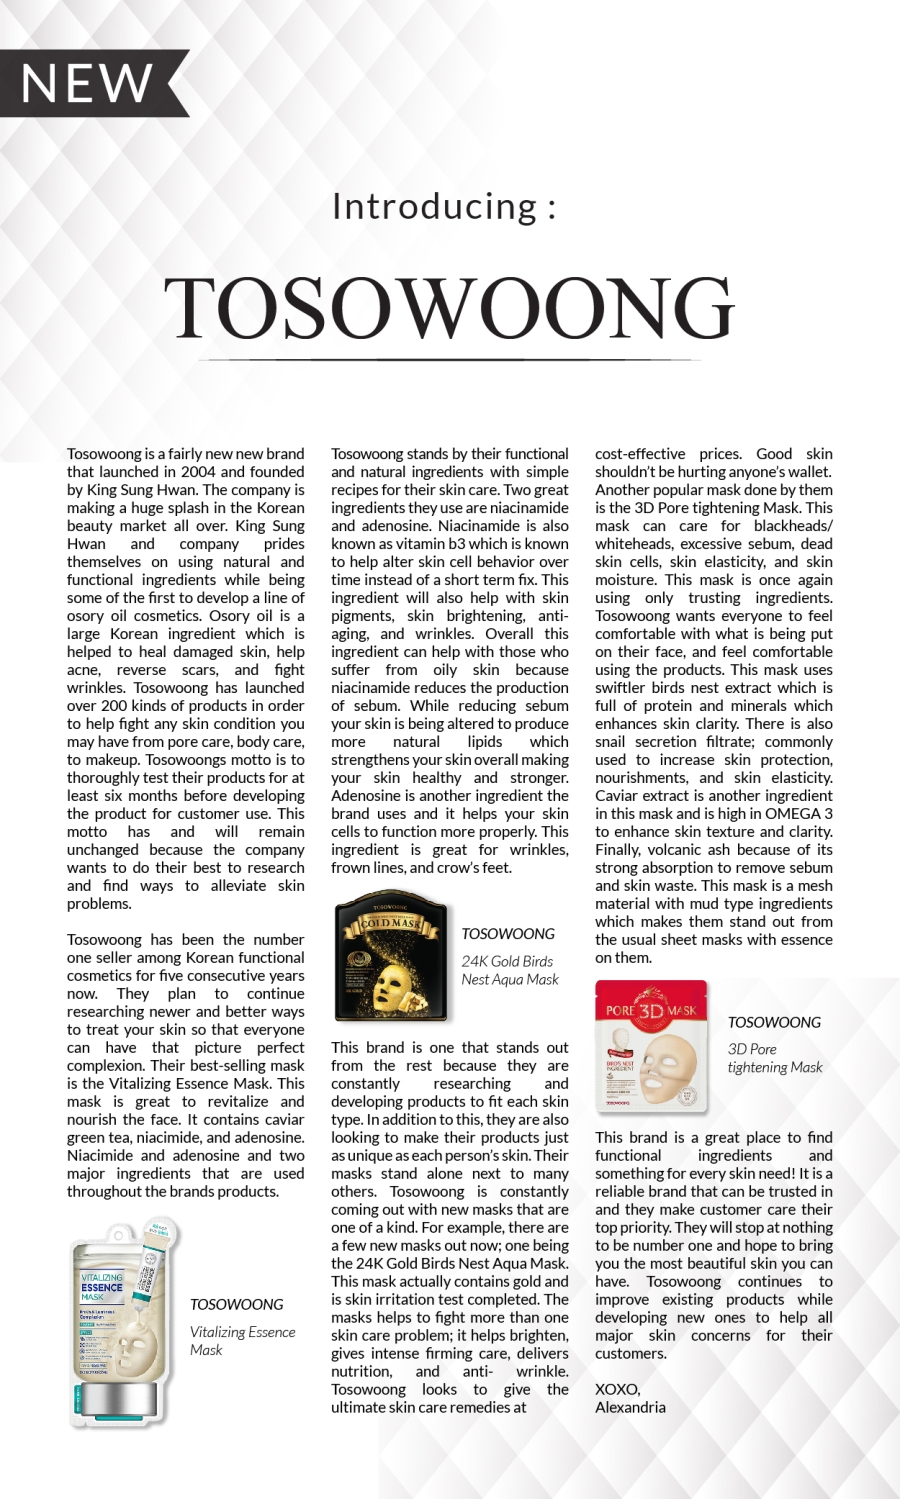 NewsletterV5_5. Introducing Tosowoong